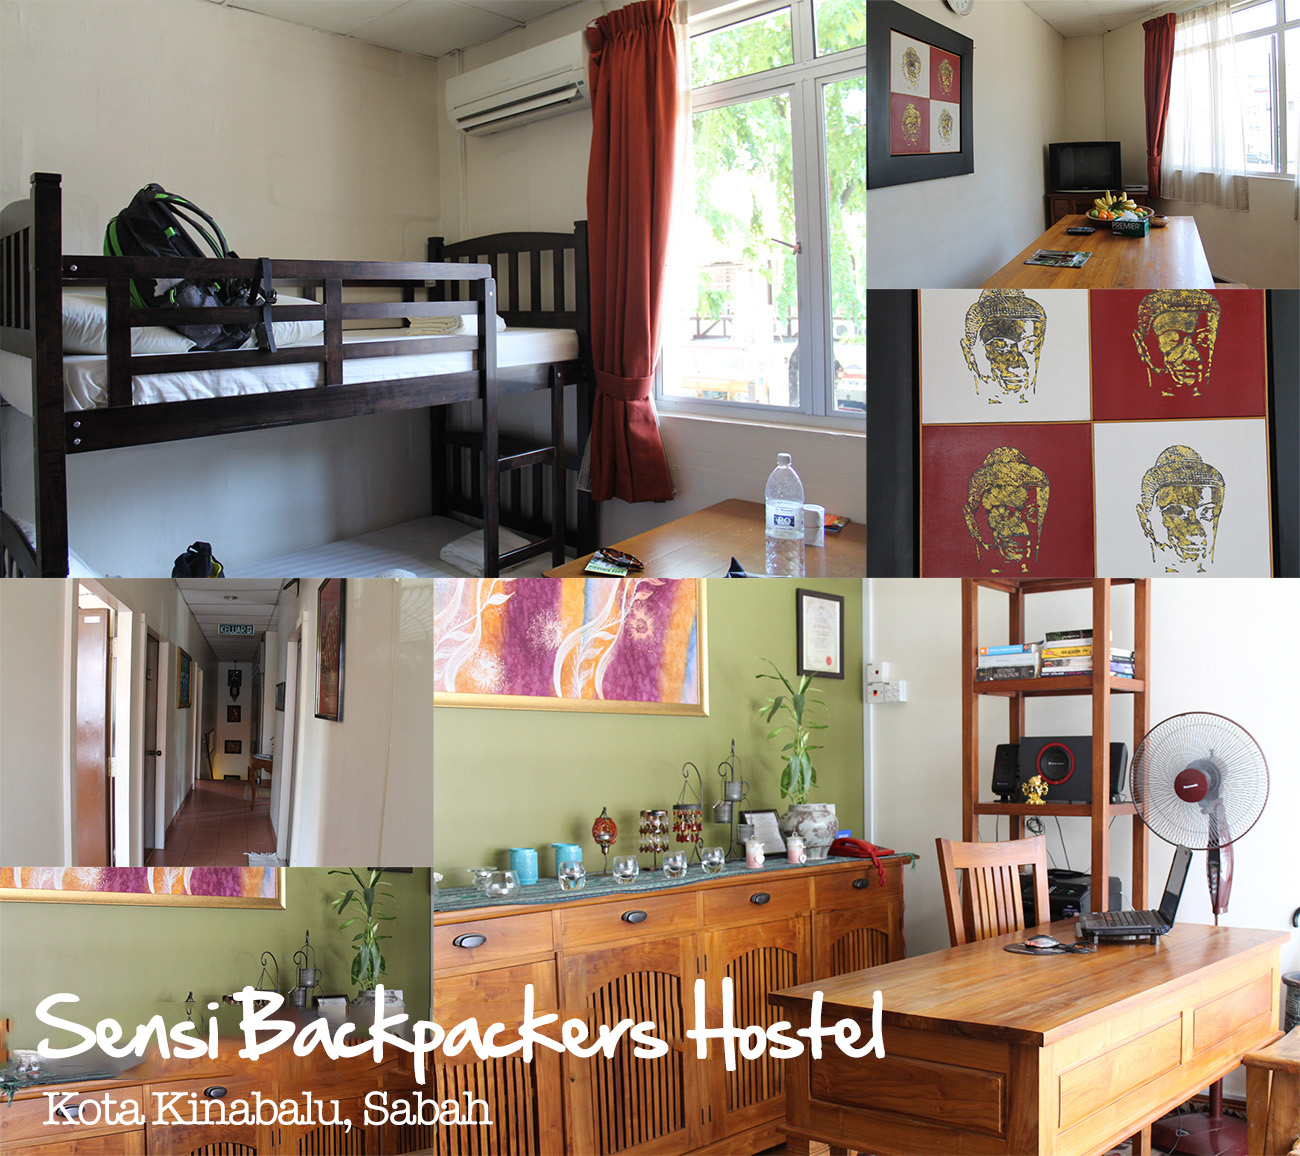 Kota Kinabalu Sensi Backpackers Hostel